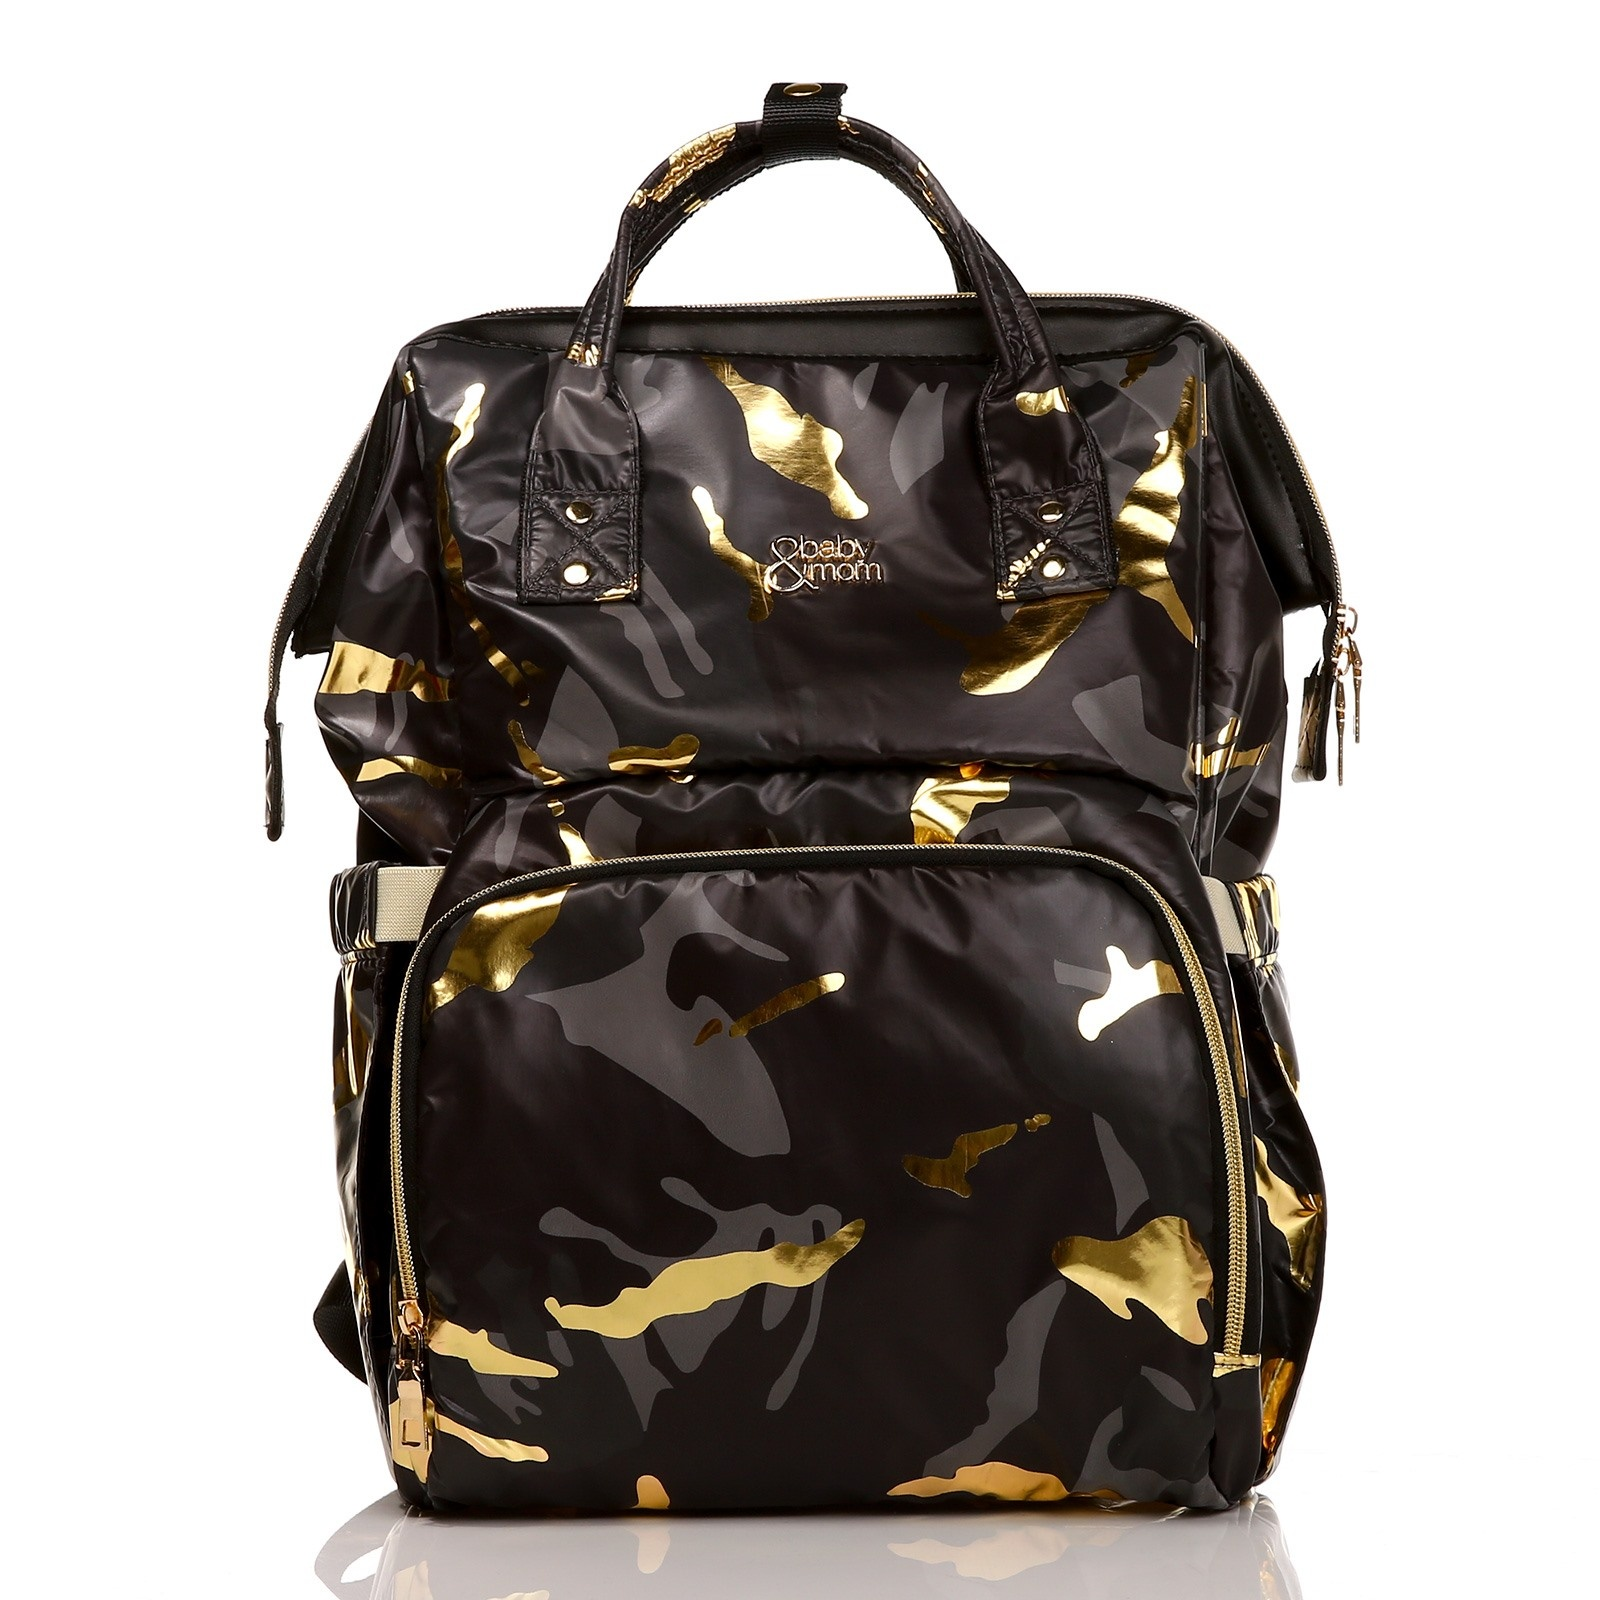 Ebebek Babymom Baby&Mom Multipurpose Travel Camouflage Backpack Bag